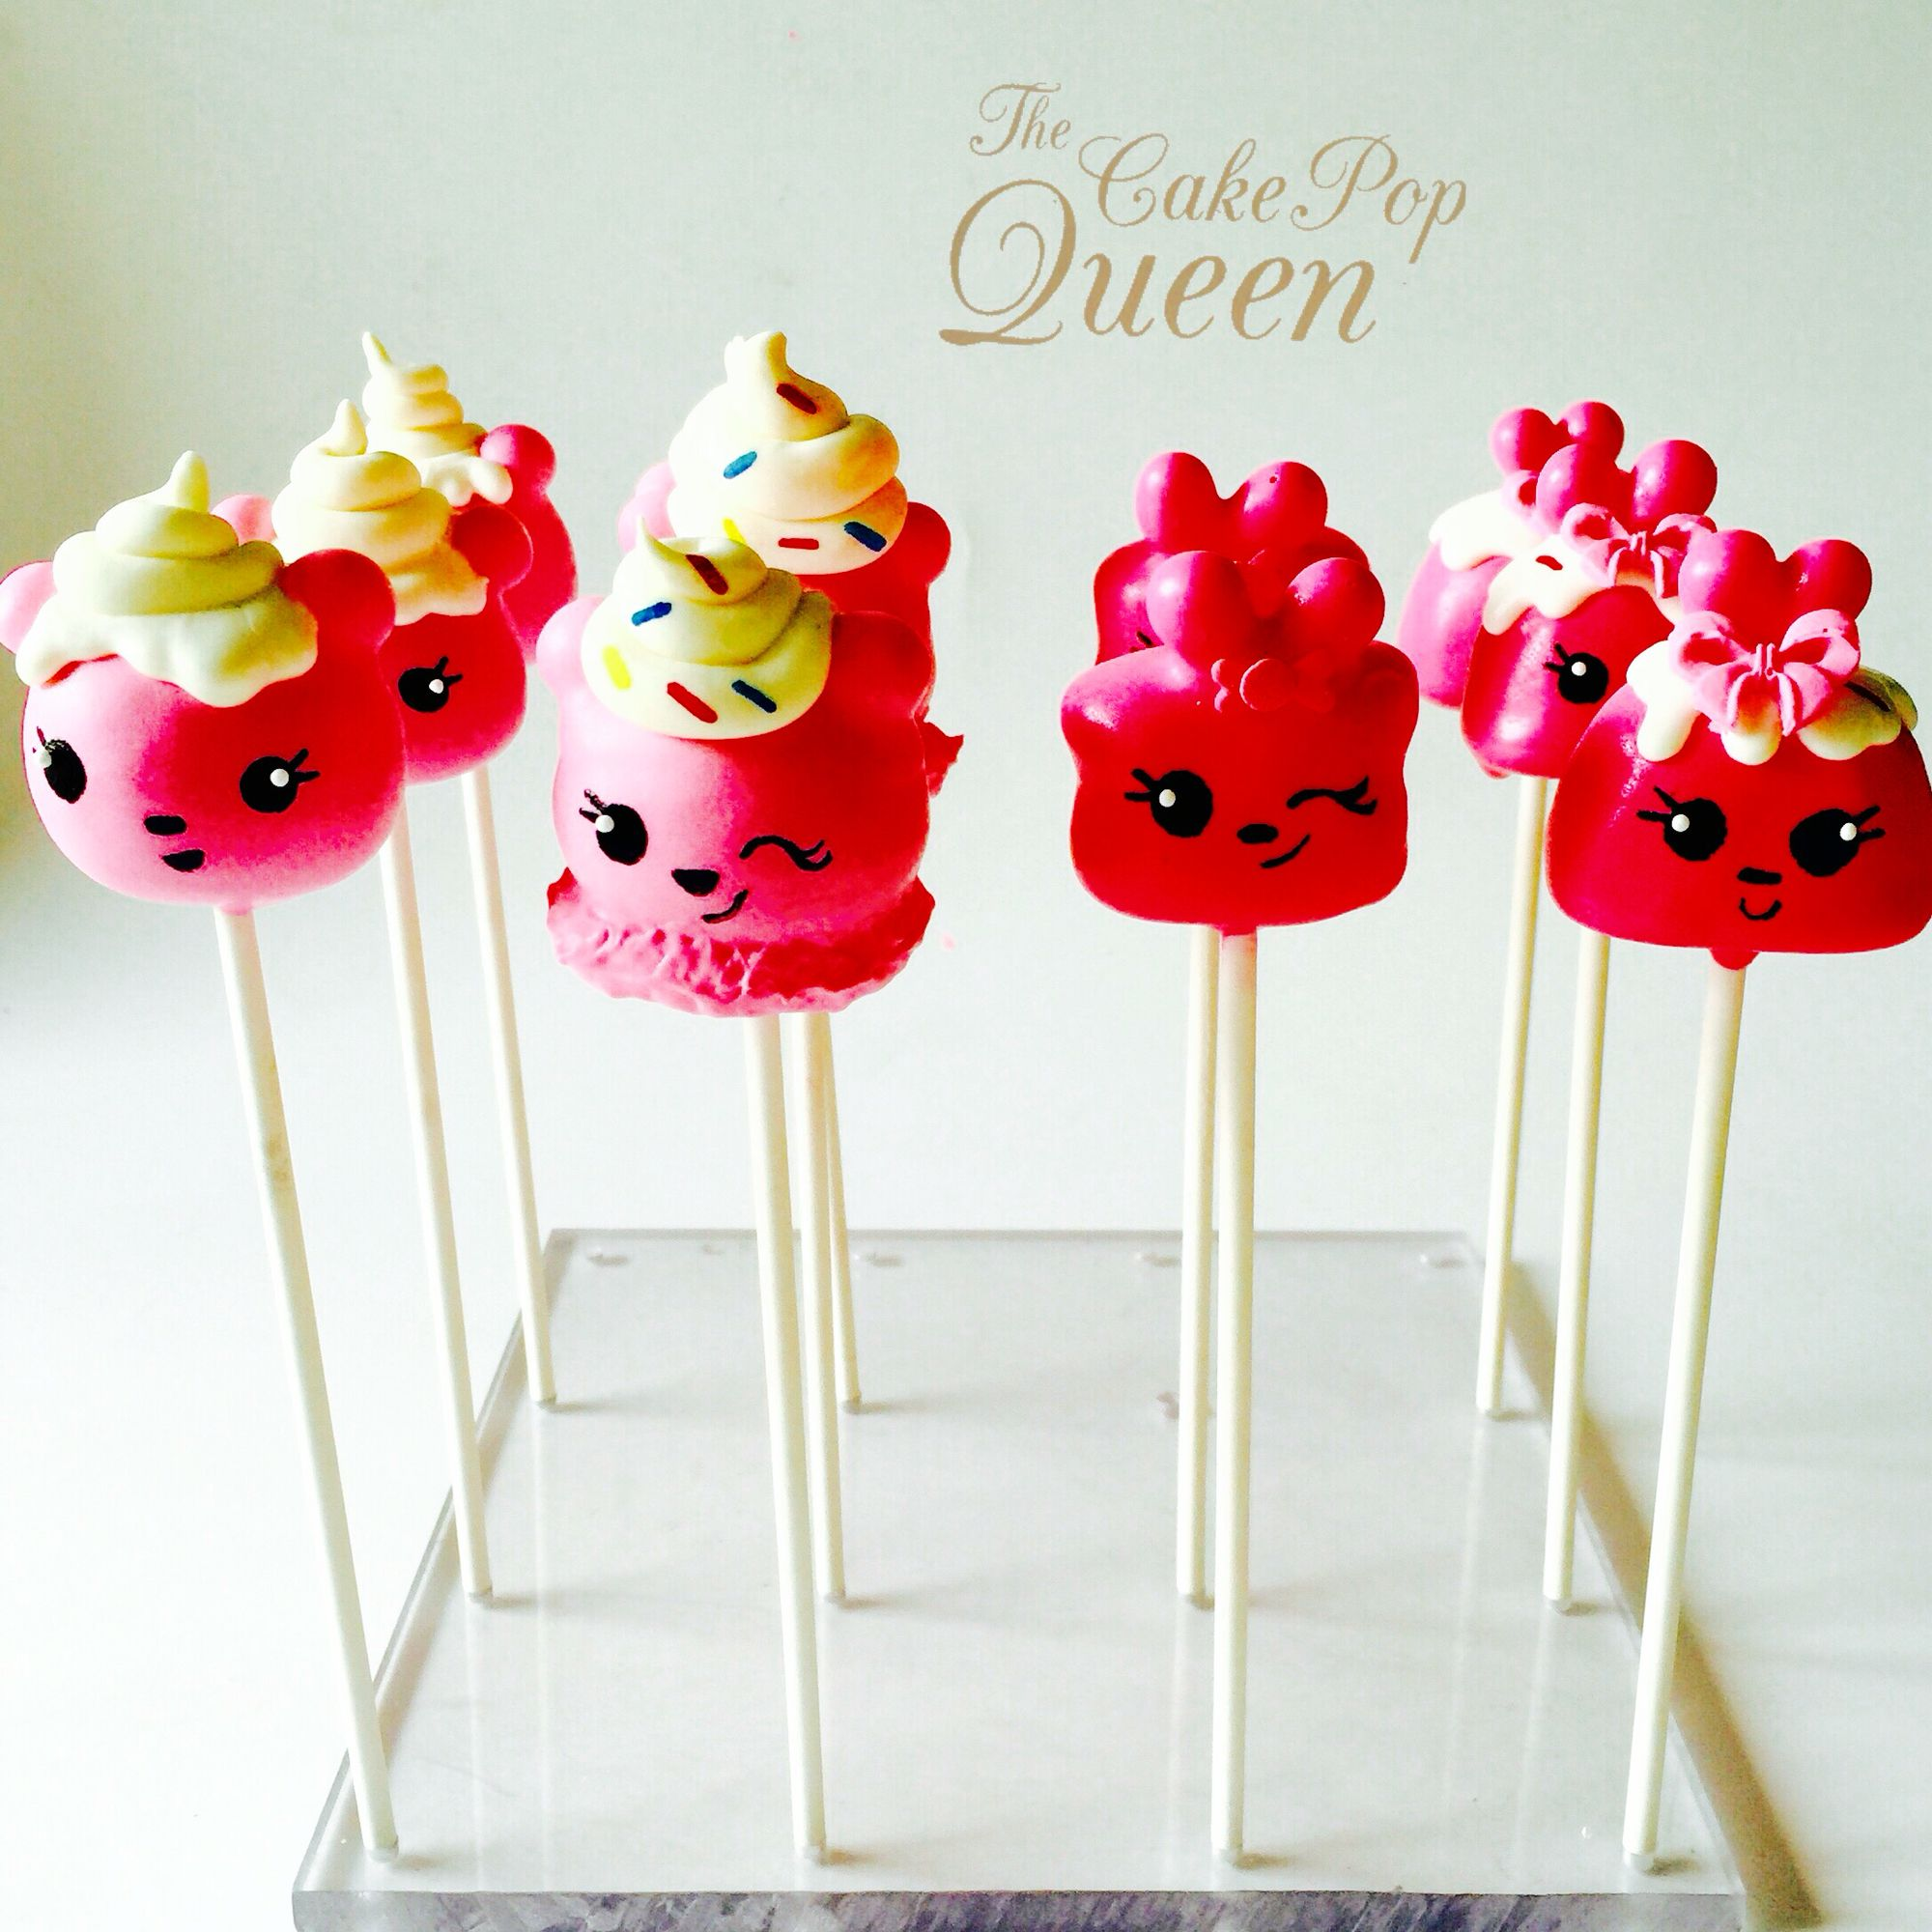 num noms cake pops kochen pinterest essen rezepte und essen und trinken. Black Bedroom Furniture Sets. Home Design Ideas